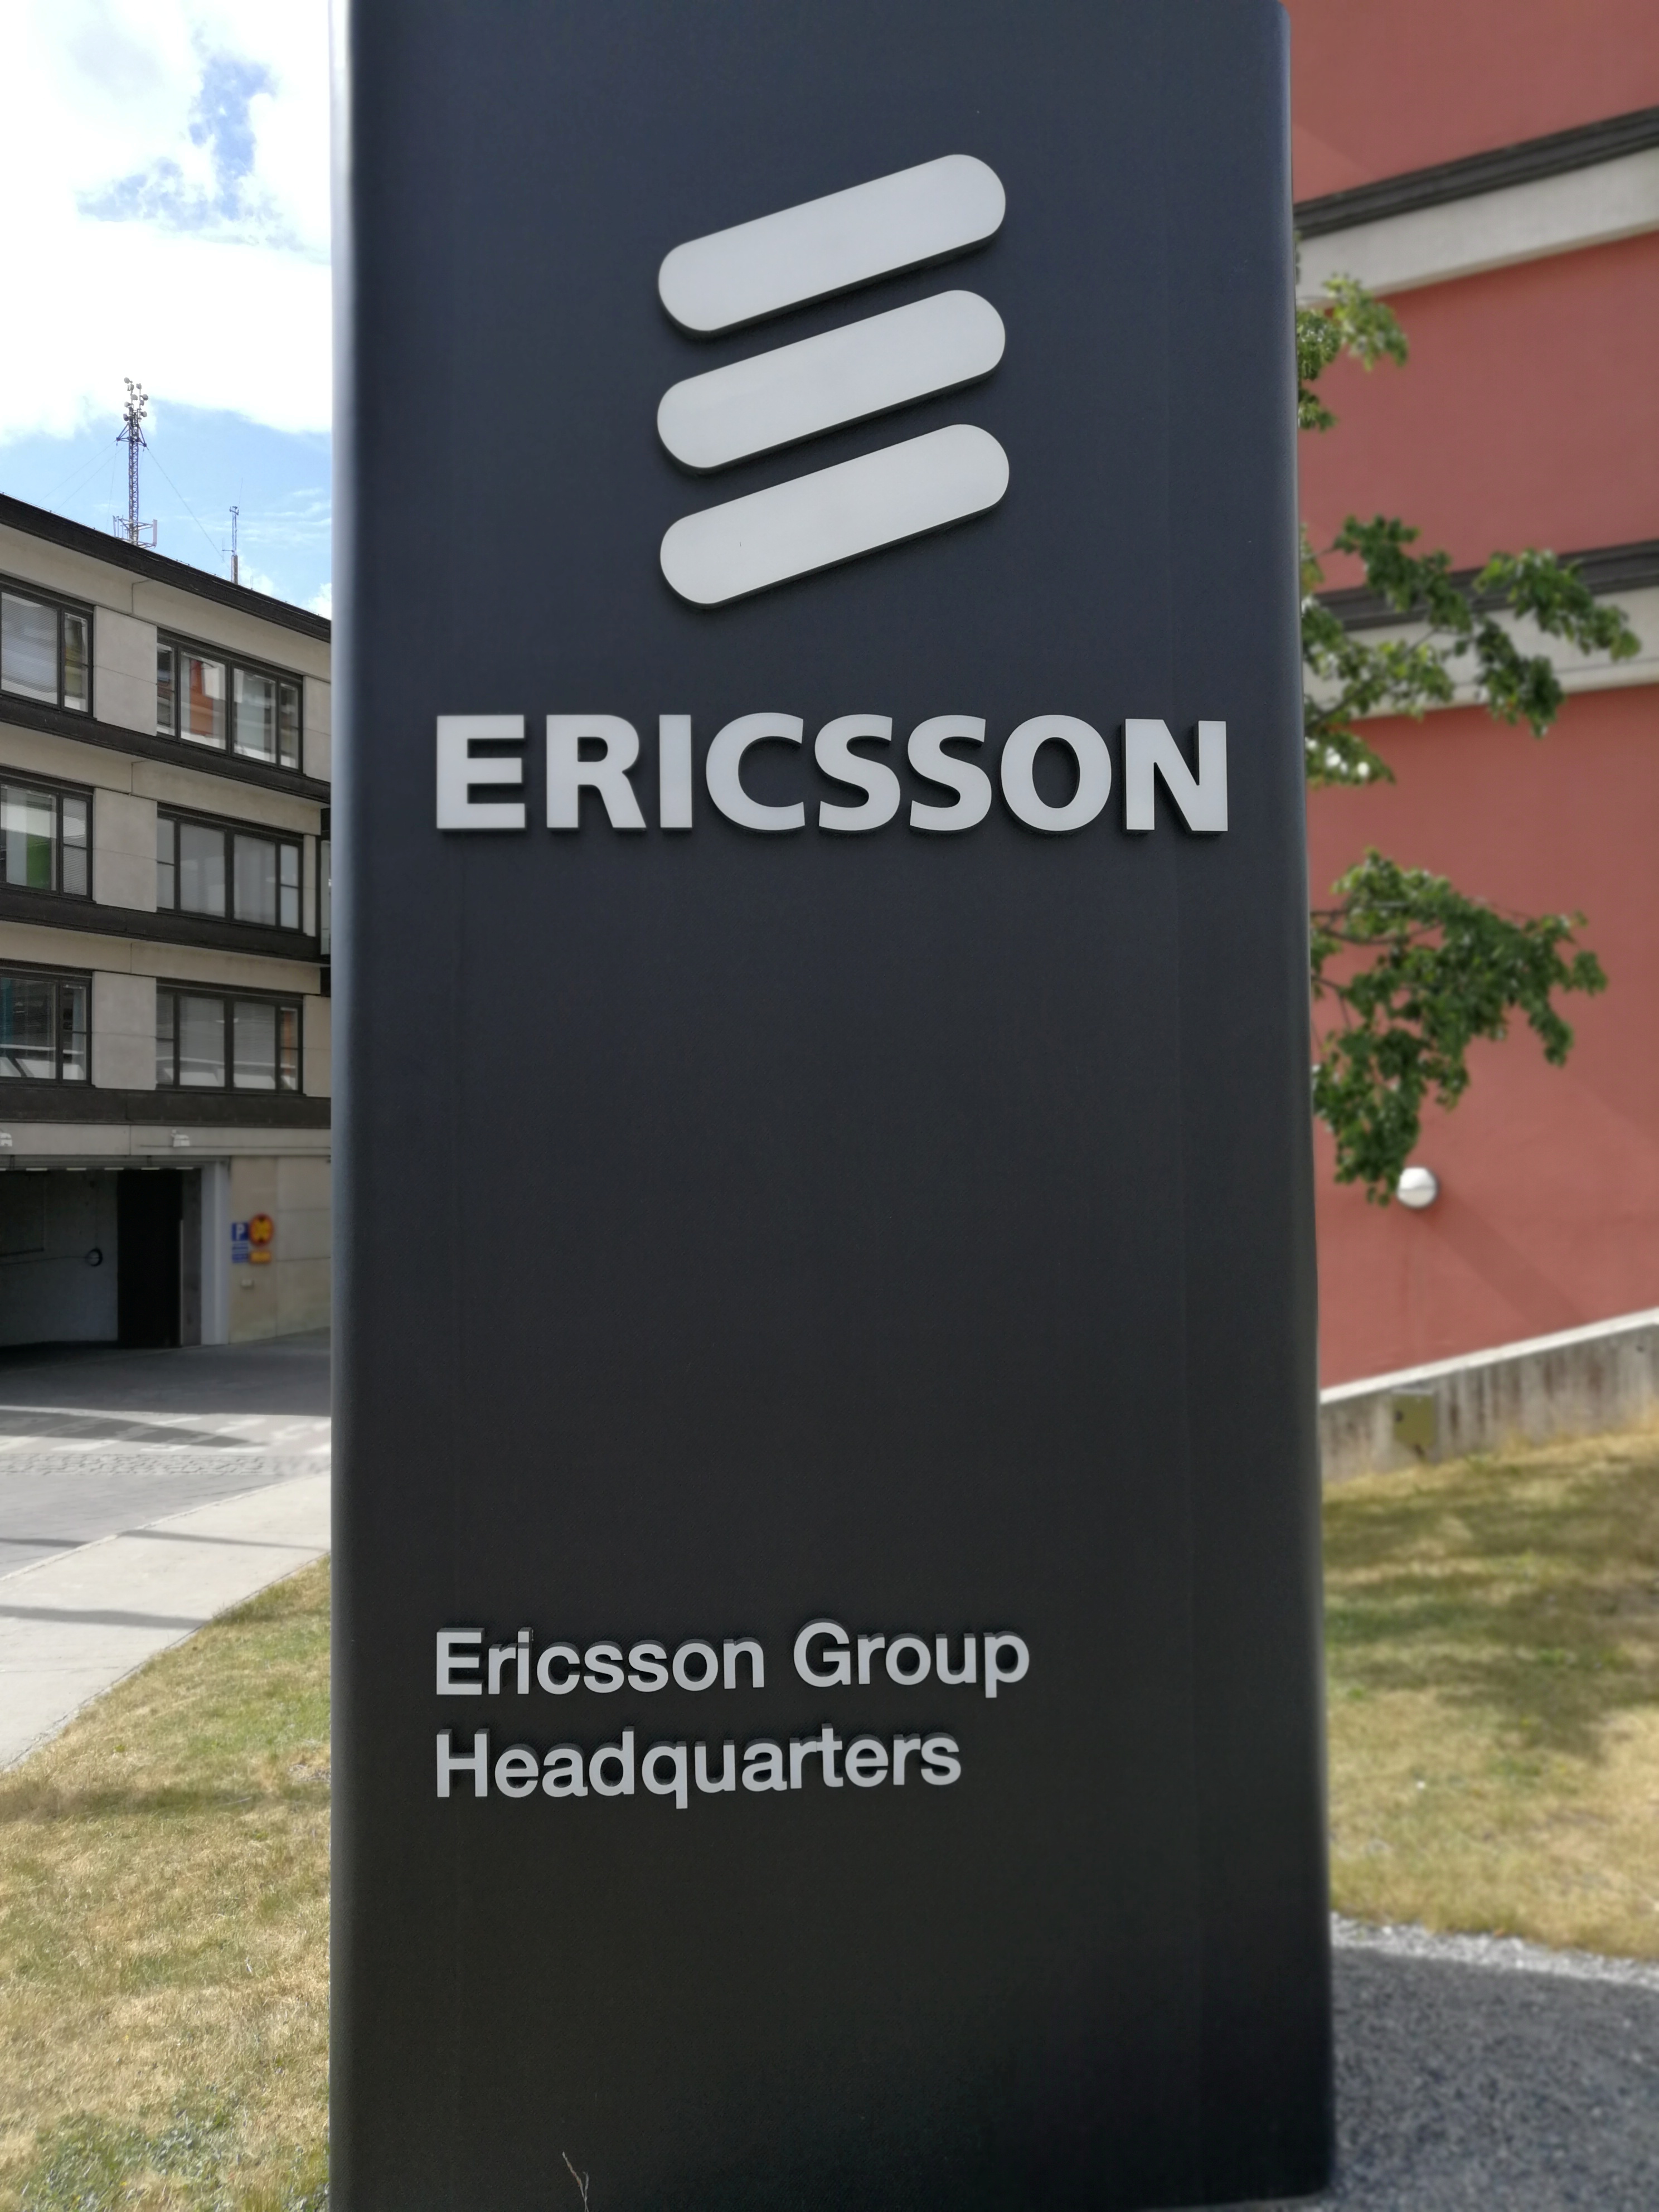 The Ericsson logo is seen at the Ericsson's headquarters in Stockholm, Sweden June 14, 2018. Picture taken June 14, 2018. REUTERS/Olof Swahnberg